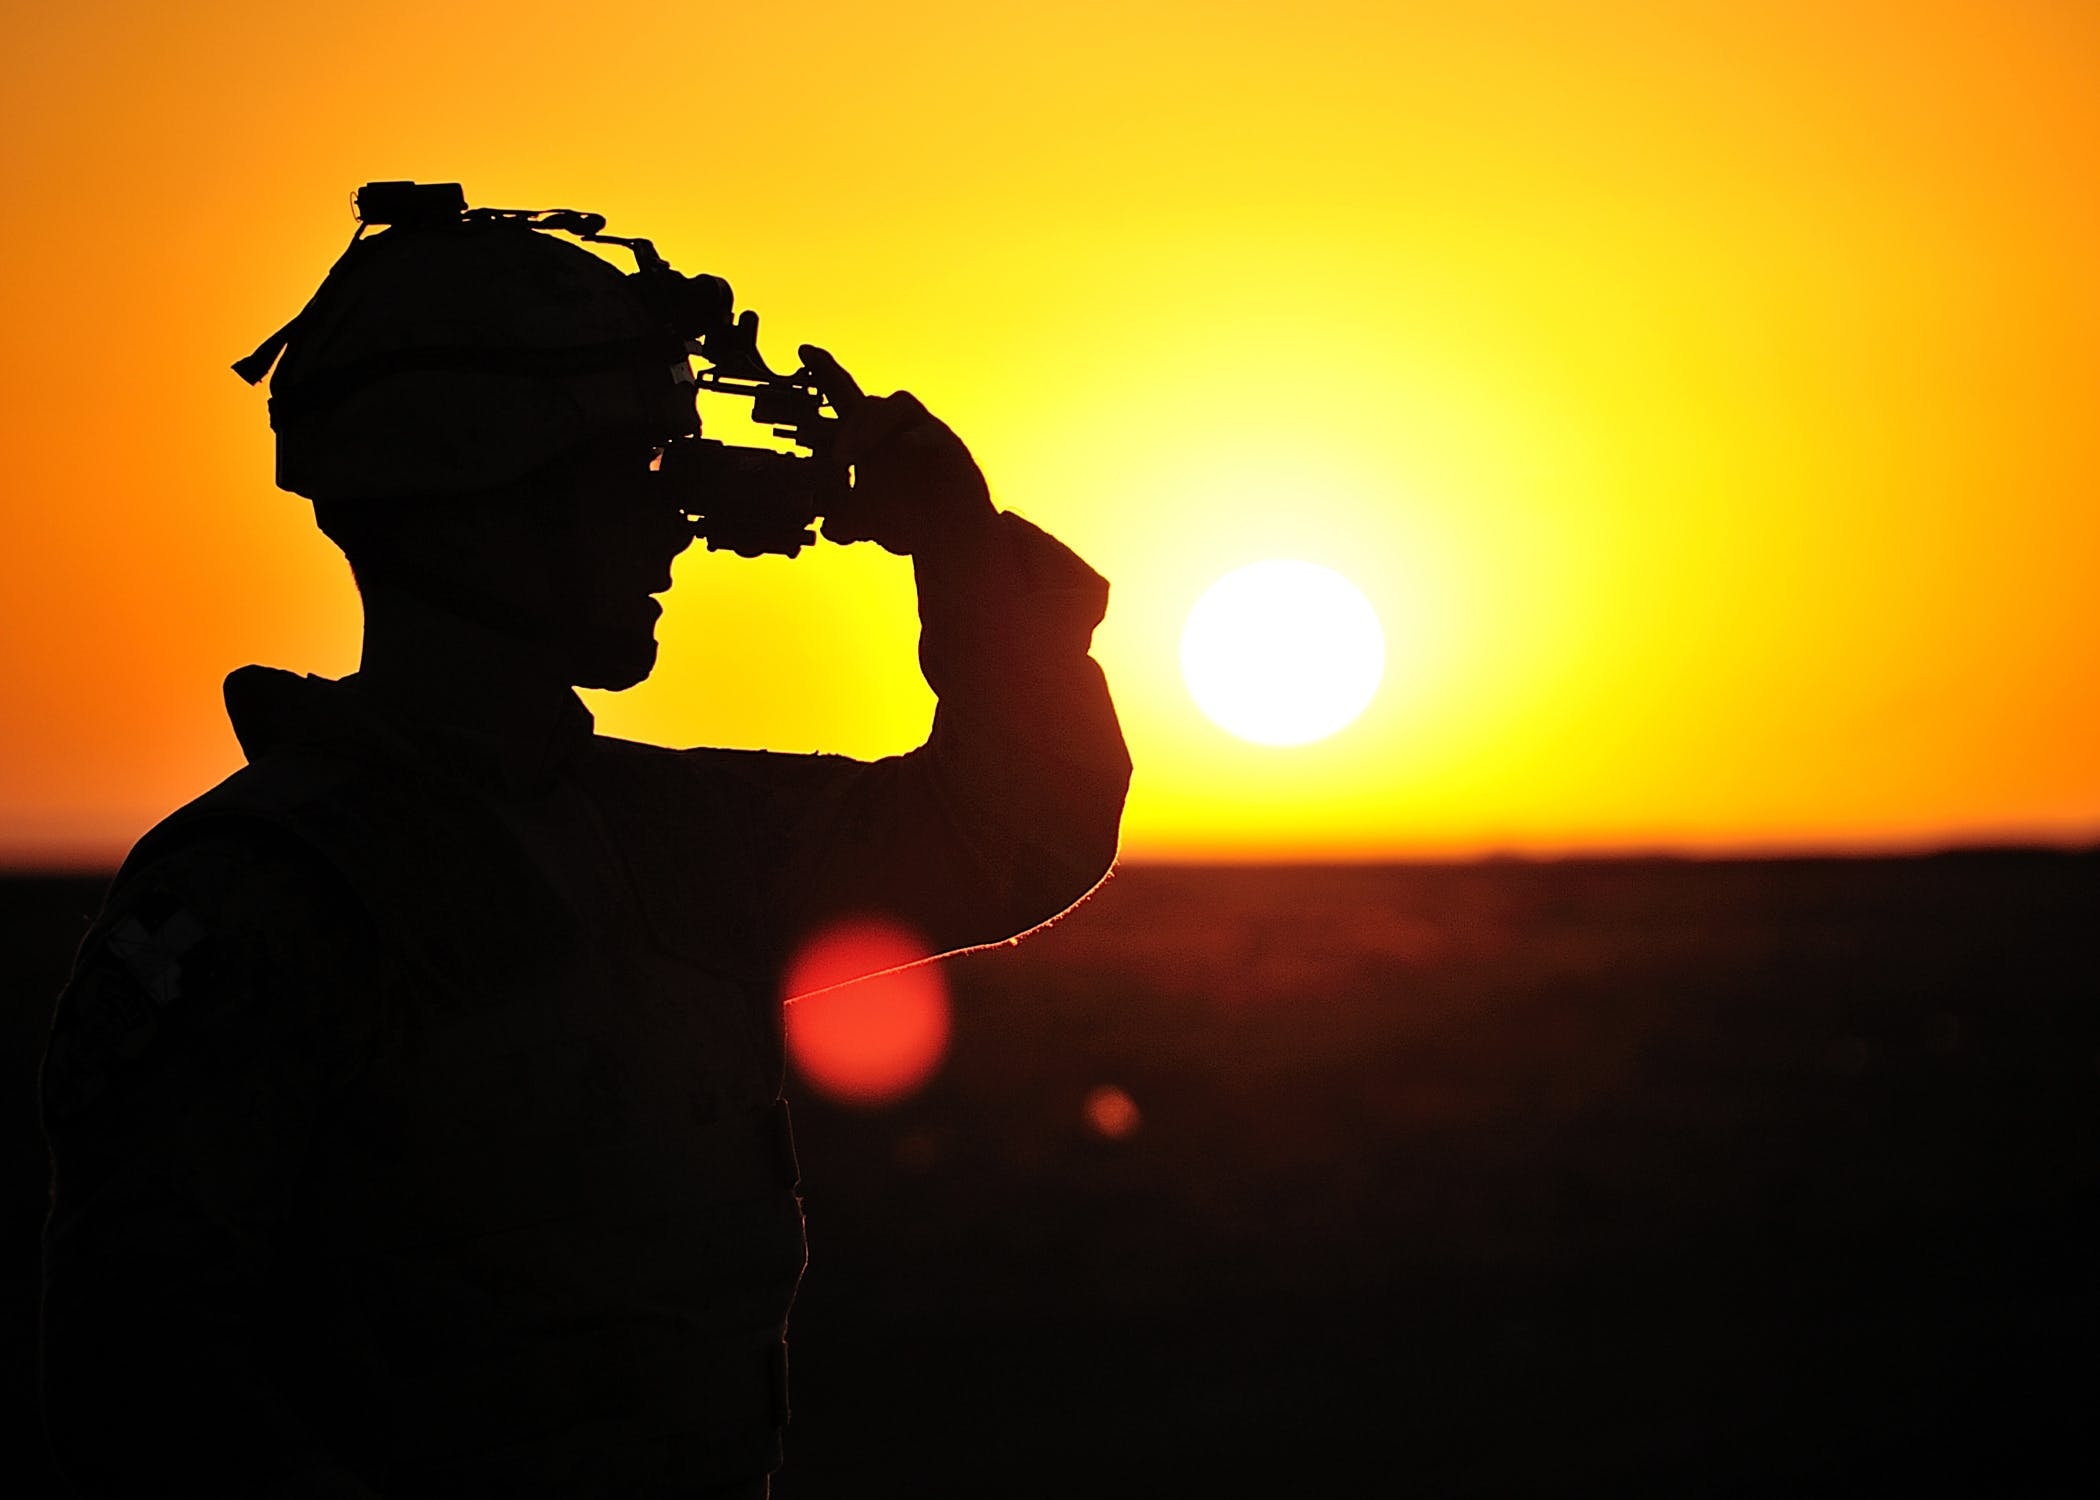 A soldier from the Mission Transition Task Force – Force Protection Company gets ready to conduct a live night range exercise on 14 Oct 2011 in Kandahar, Afghanistan. DND photo